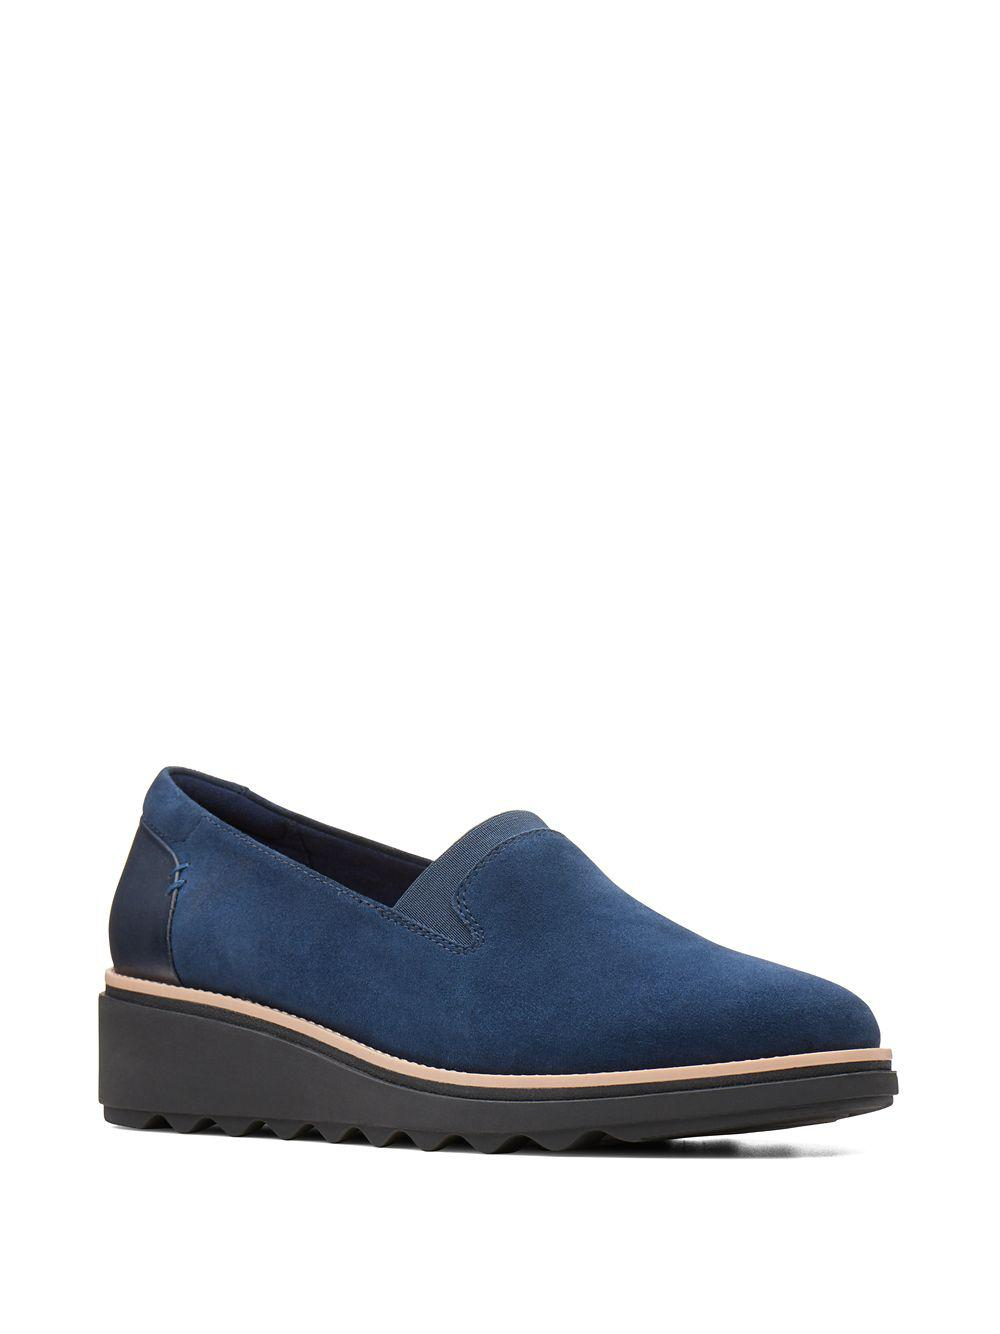 35868c6538d Lyst - Clarks Sharon Dolly Suede Loafers in Blue